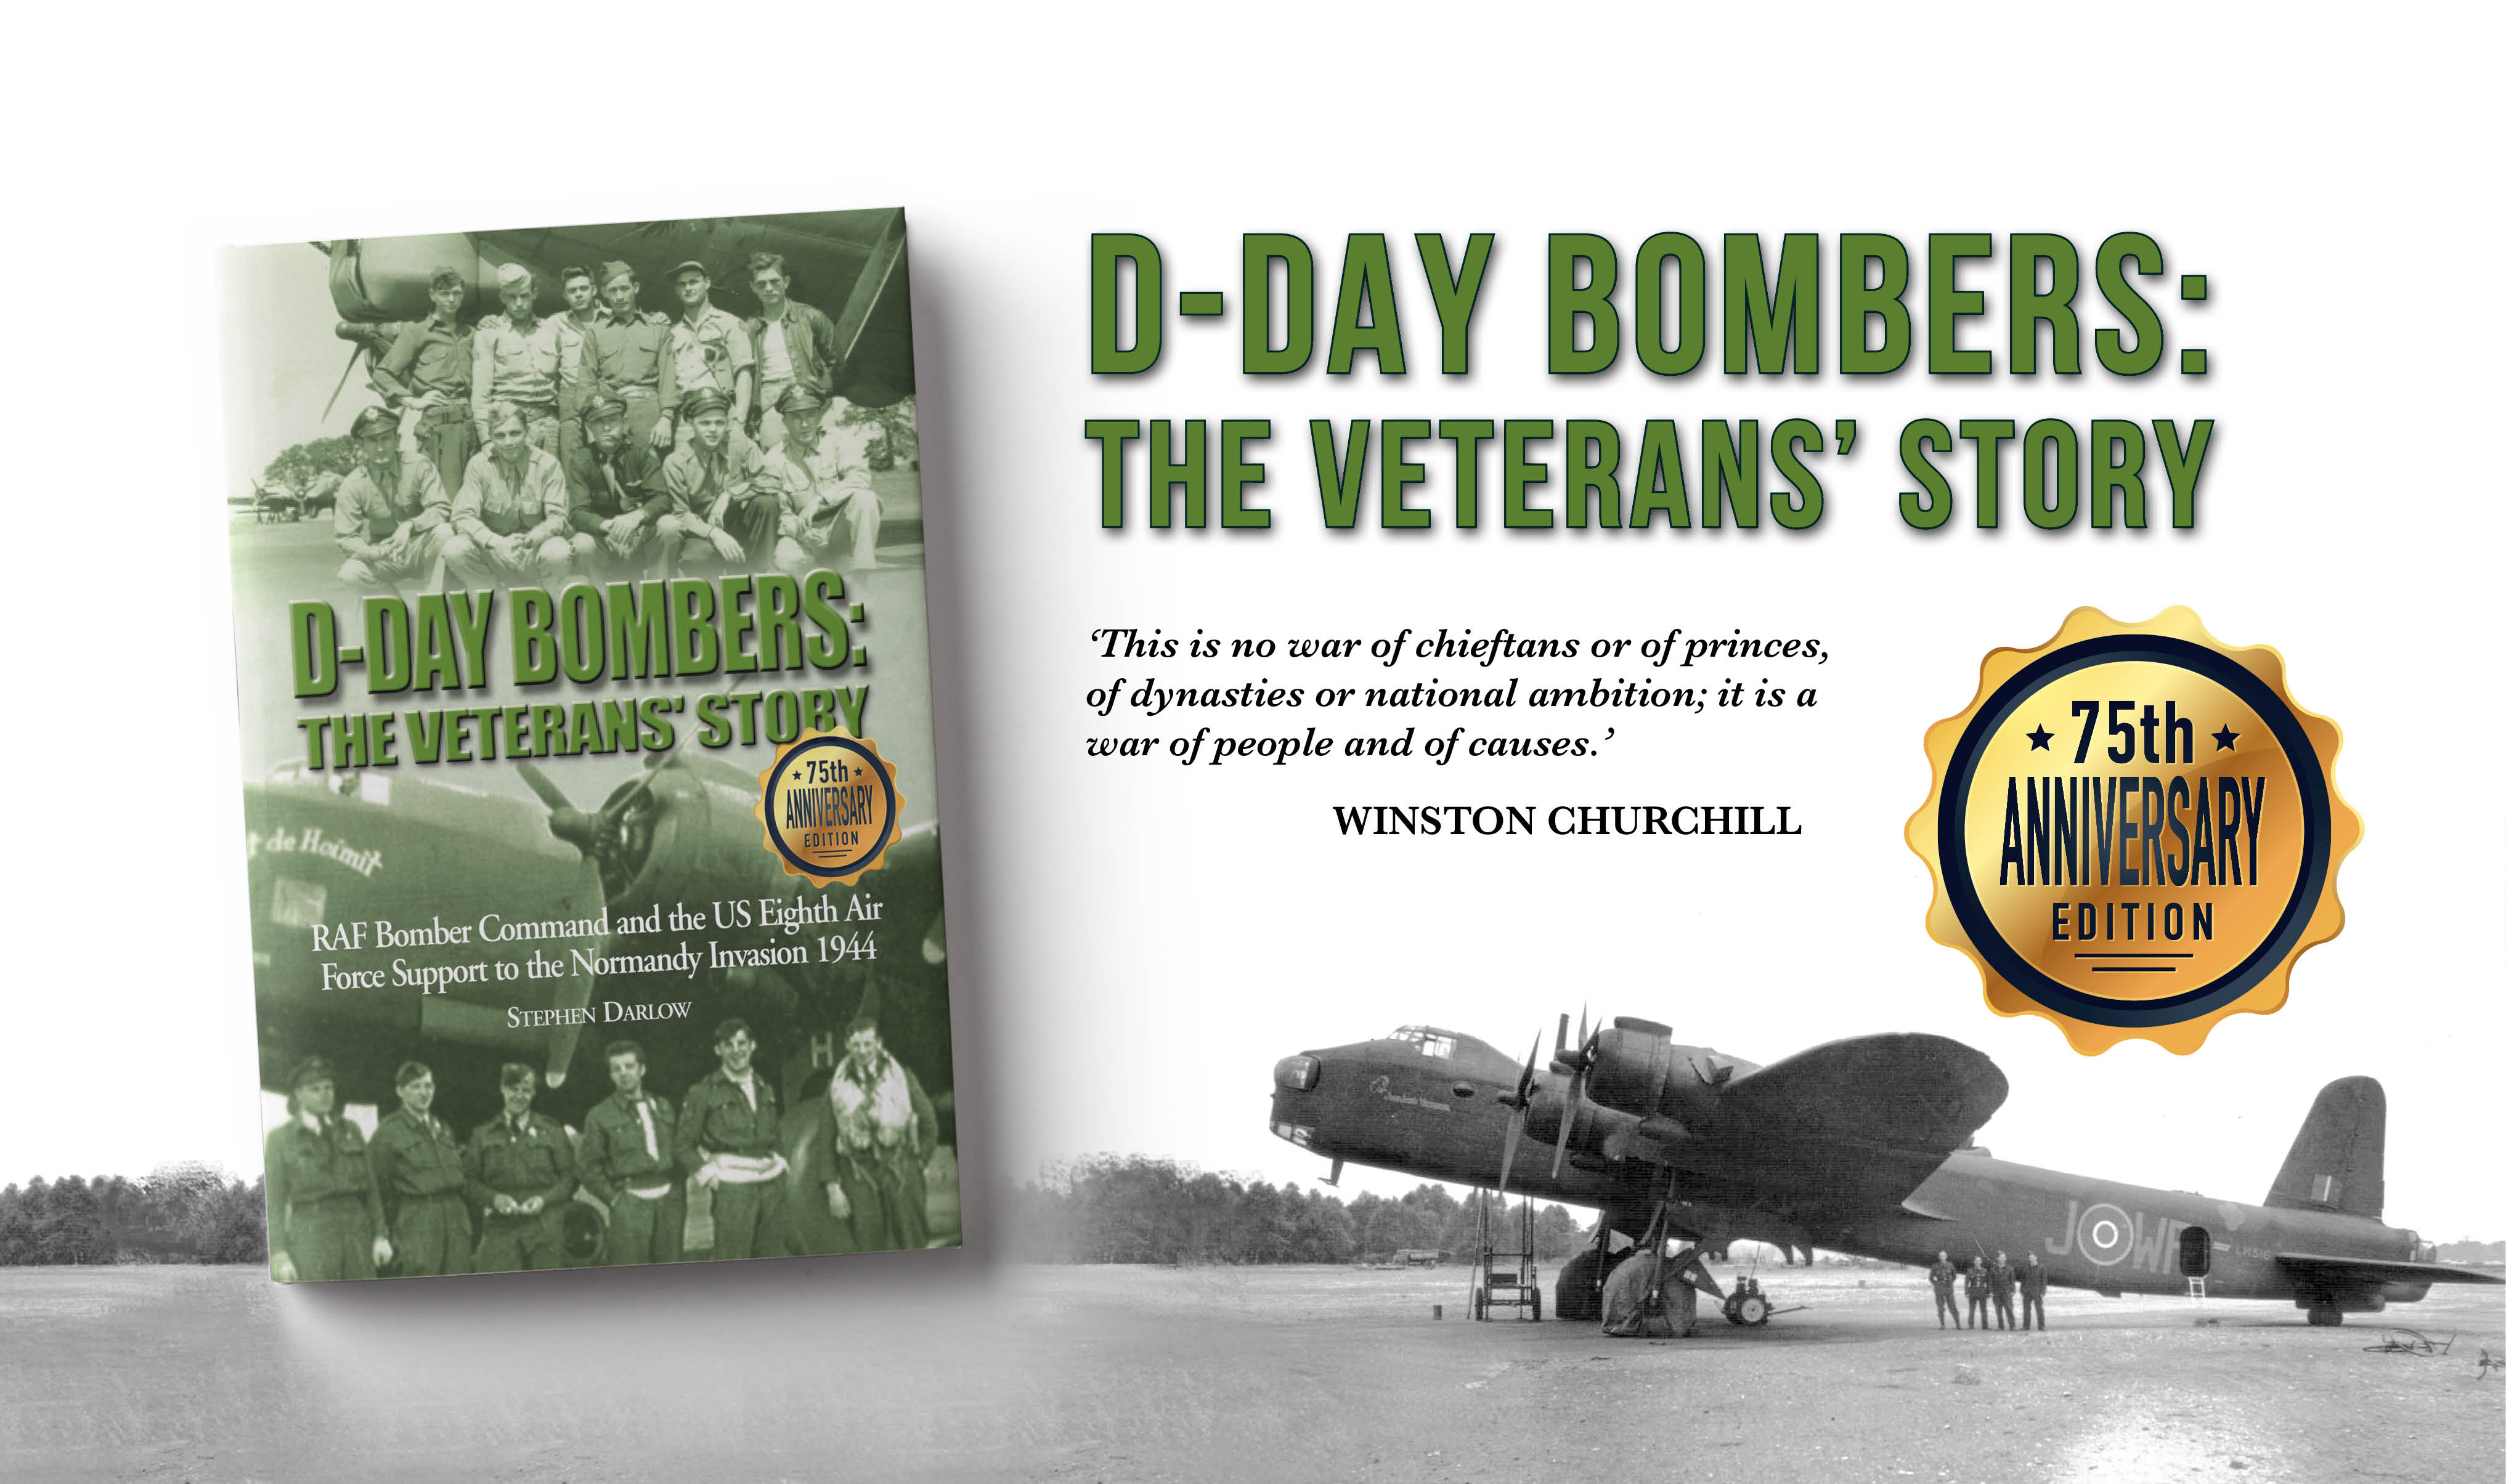 D-DAY-BOMBERS